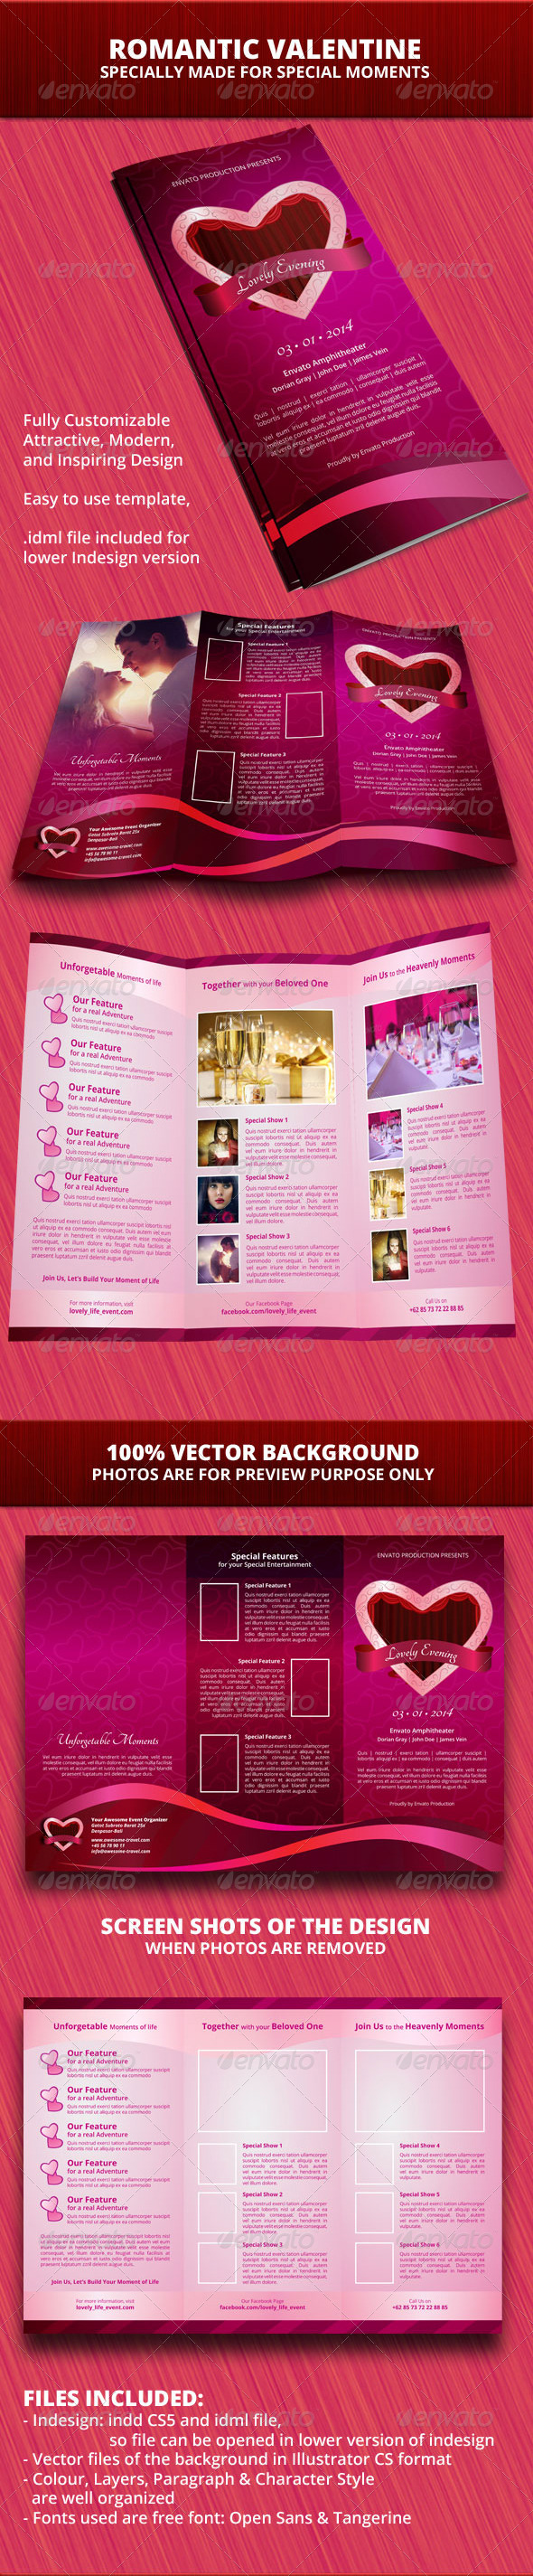 Romantic Valentine Trifold Brochure - Informational Brochures